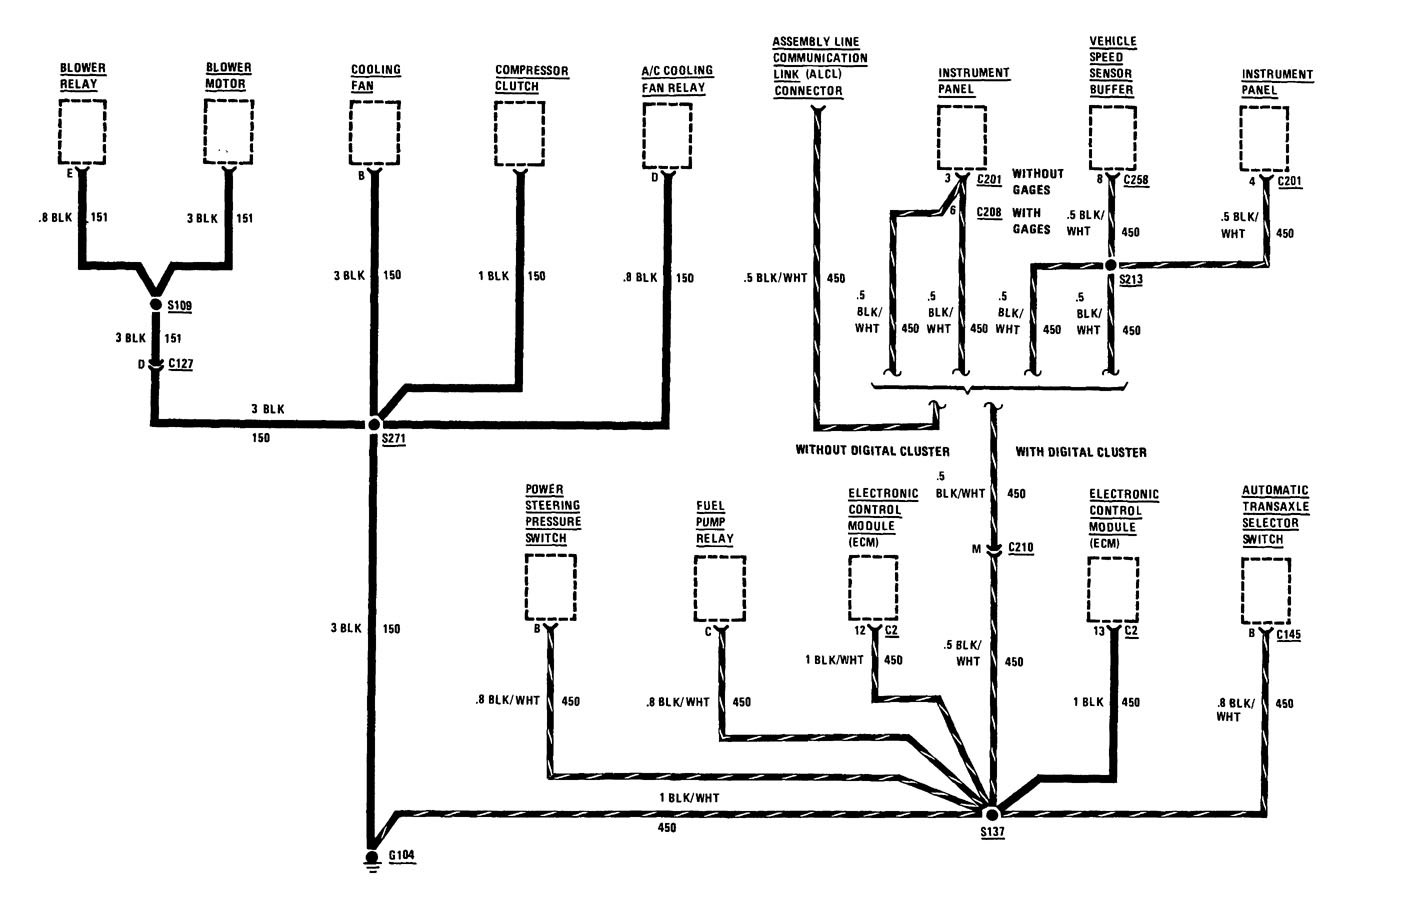 1960 Desoto Wiring Diagram 1960 Chevy Wiring Diagram